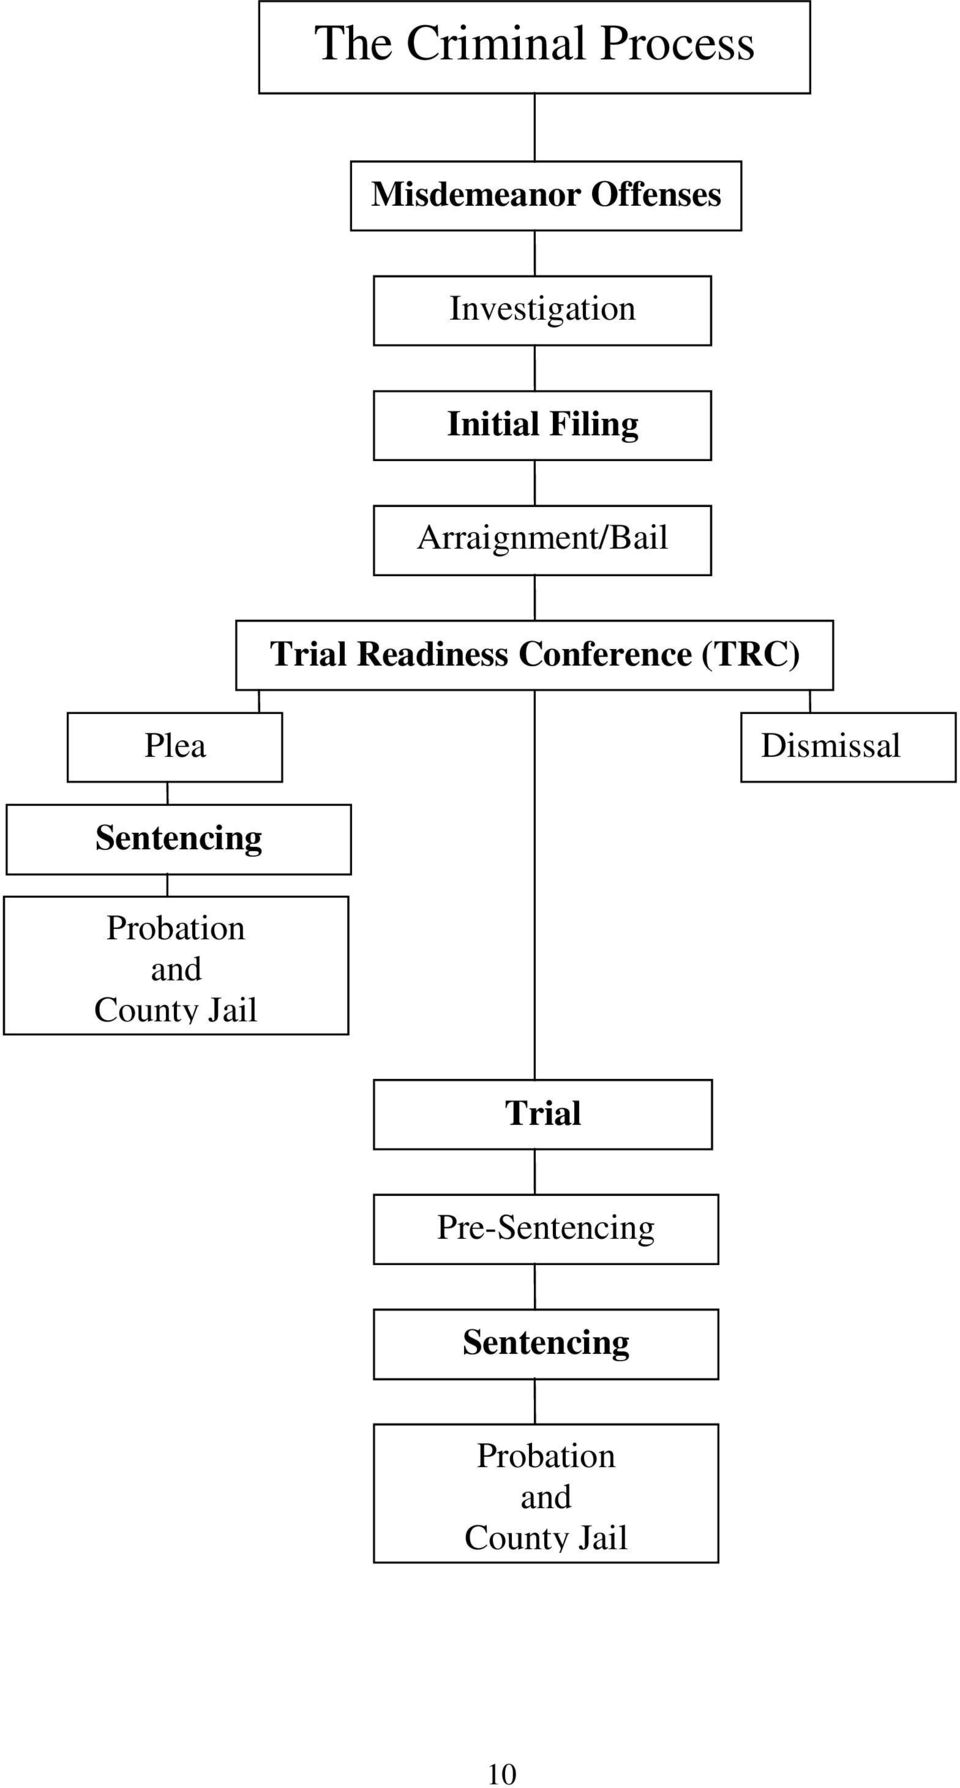 Conference (TRC) Plea Dismissal Sentencing Probation and